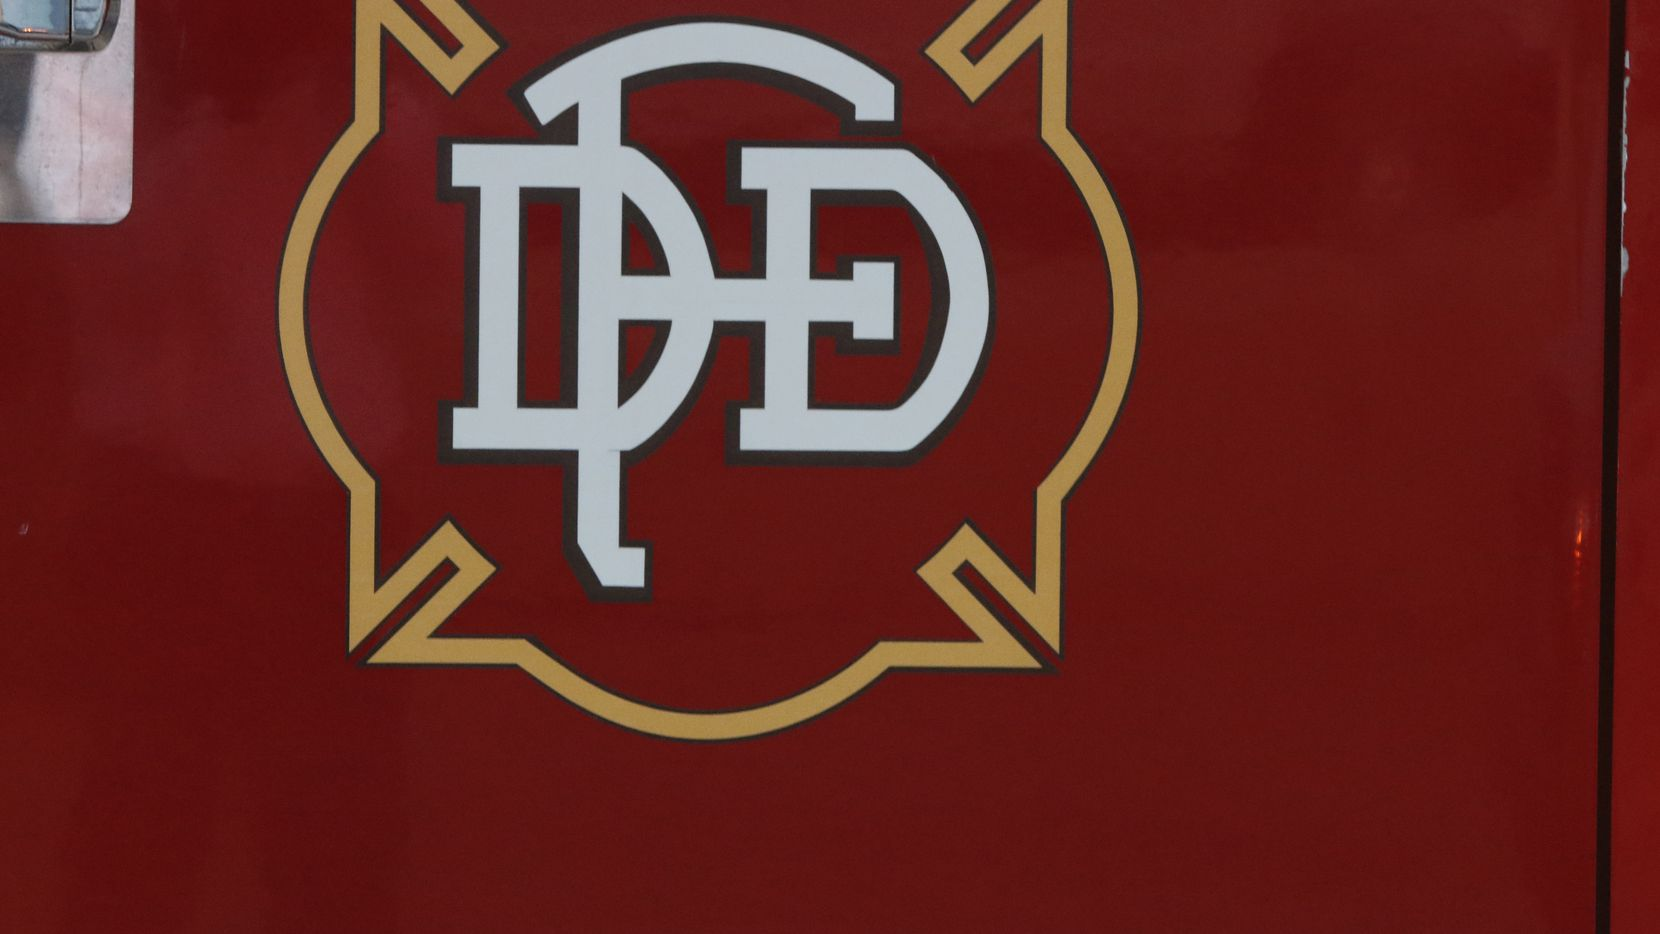 A Dallas Fire-Rescue vehicle is seen in this file photo.